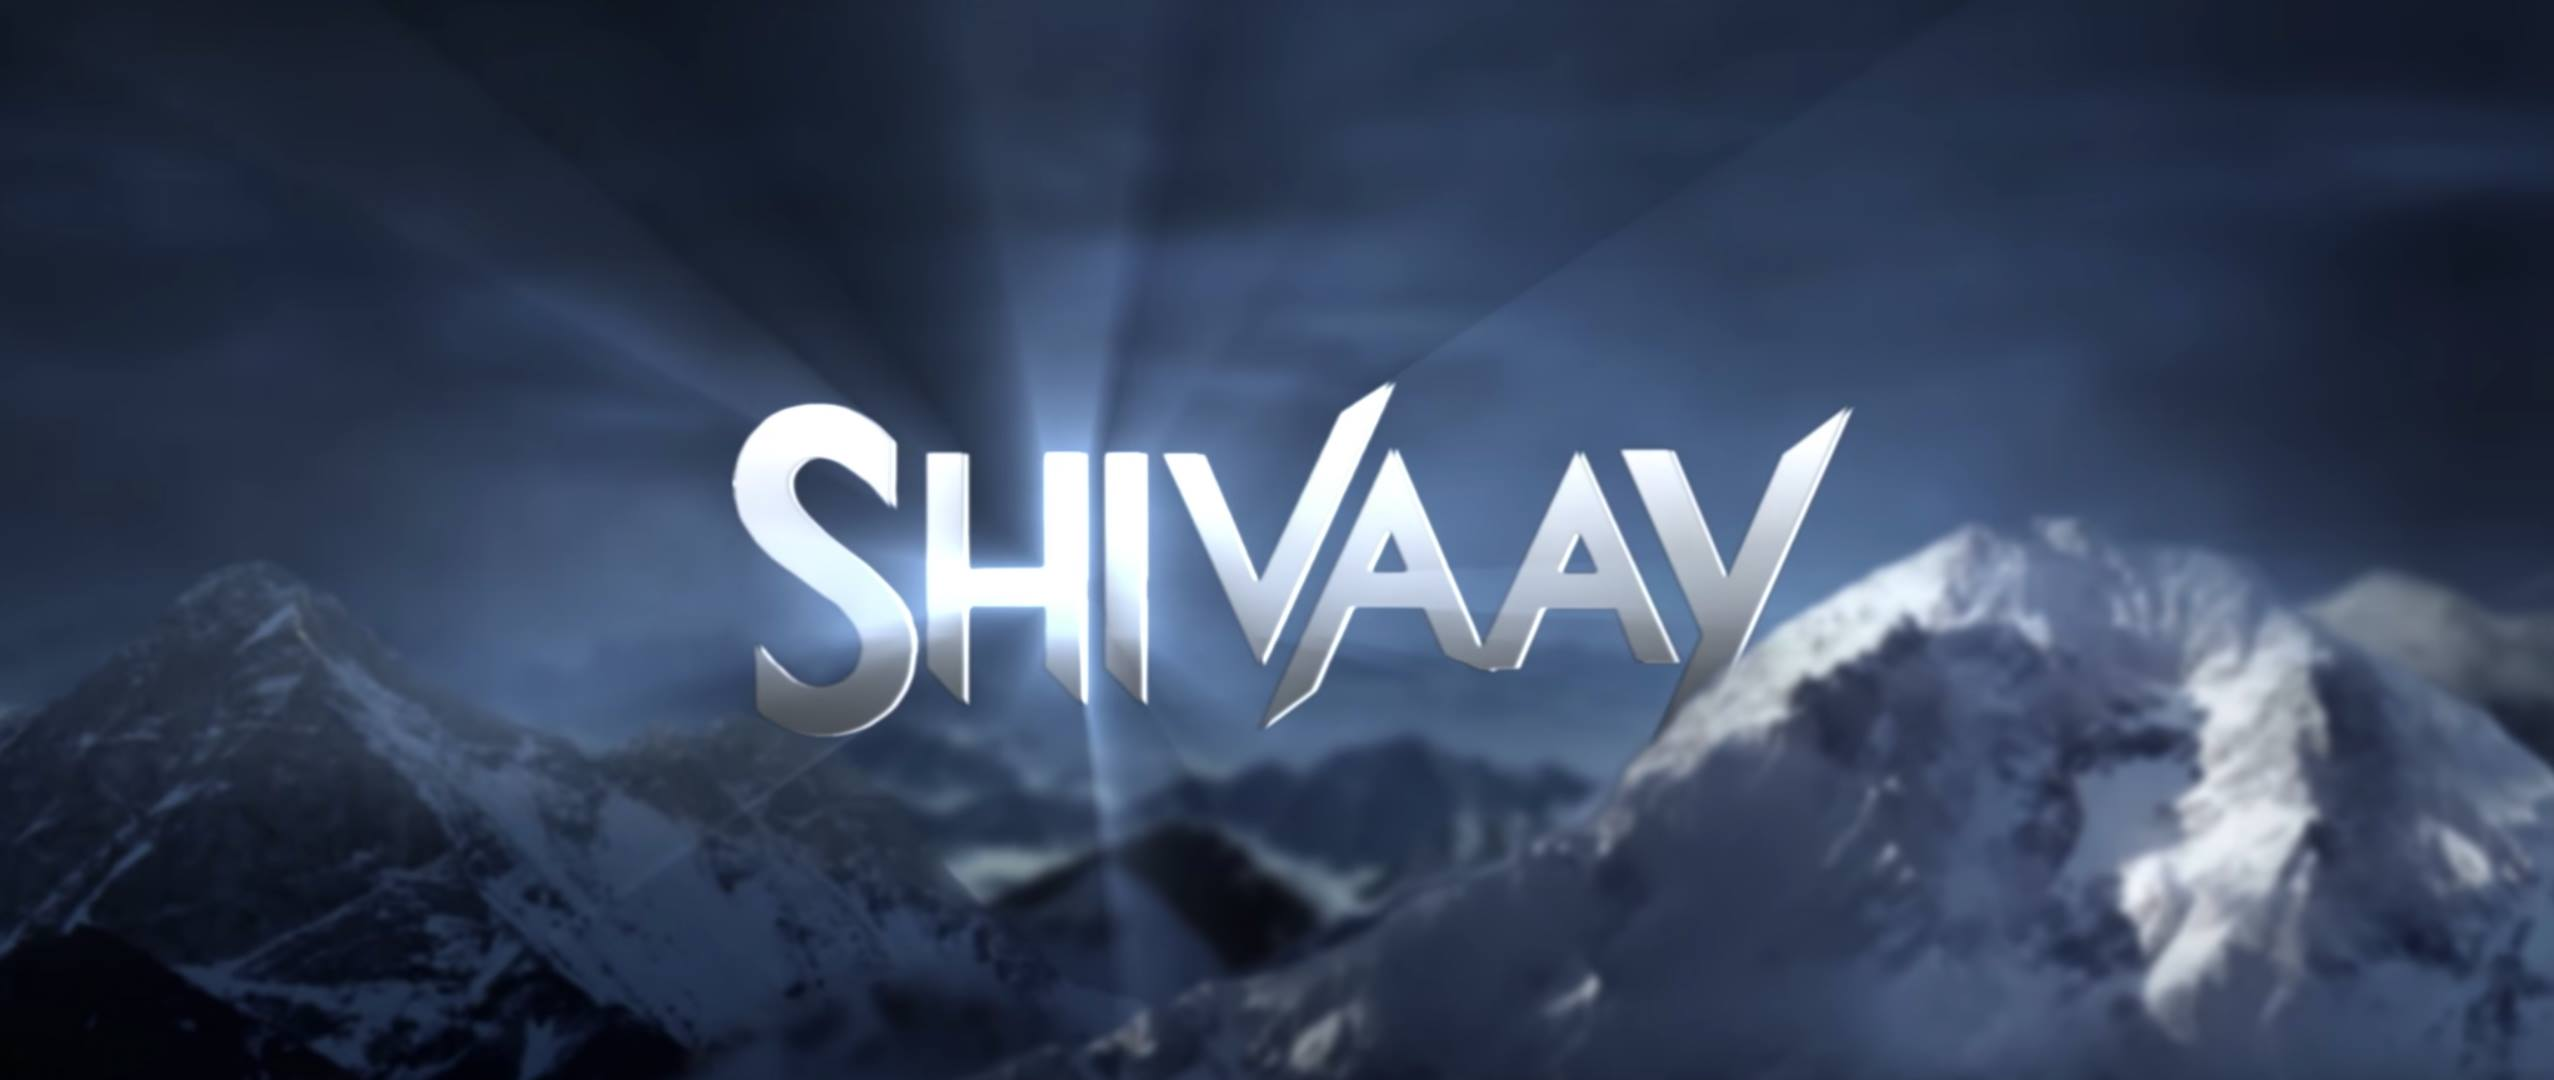 Watch : Official Trailer of Ajay Devgn's 'Shivaay'